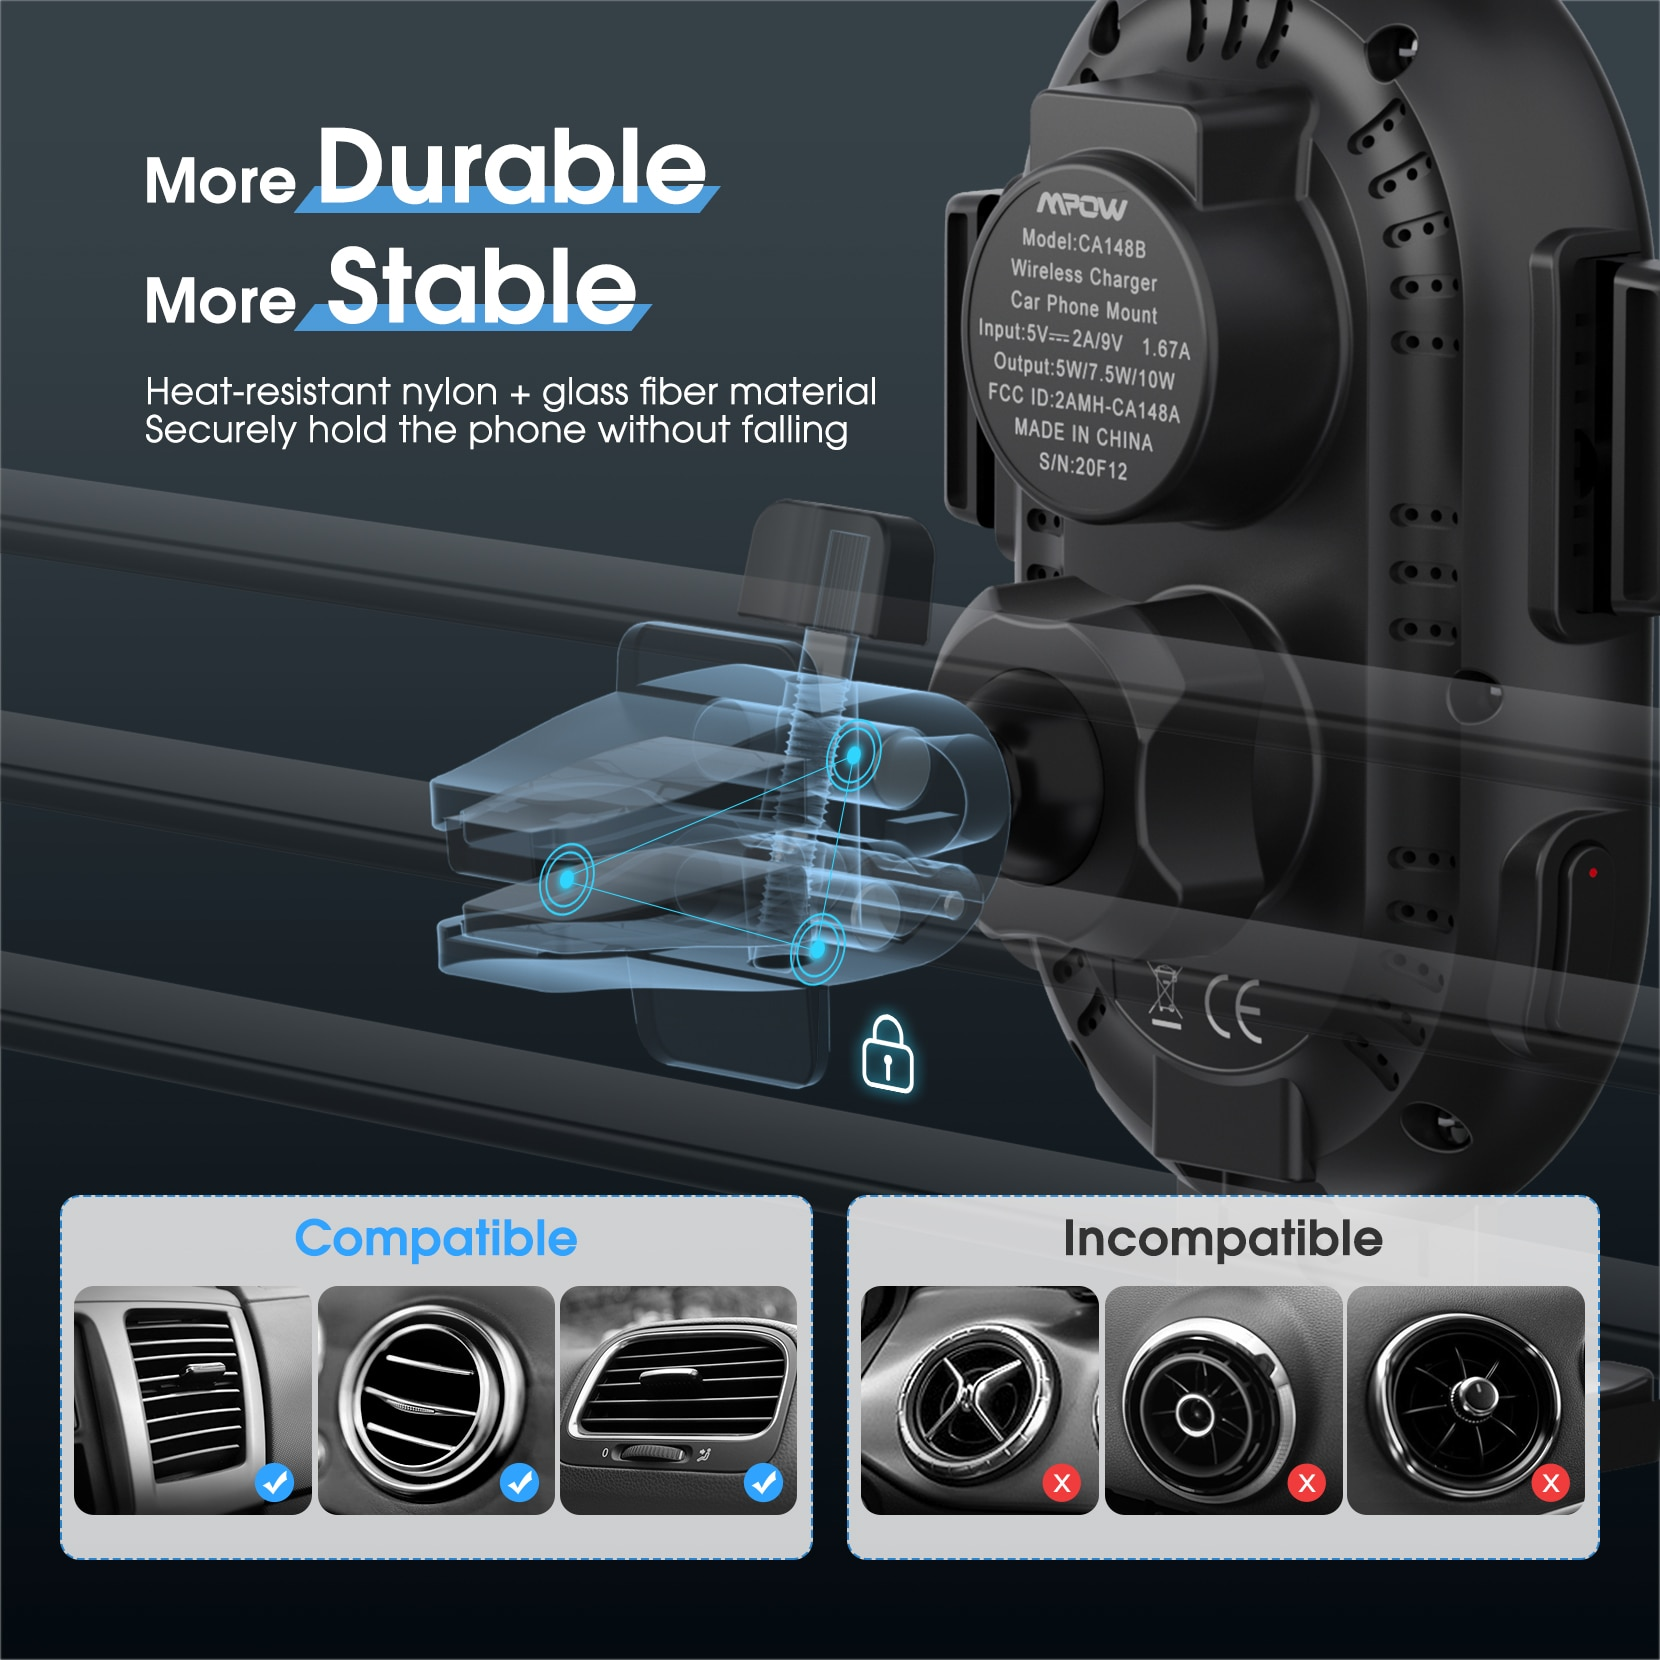 Hff307d9d917b4182bd64ba992a7f09a58 - MPOW CA164 Wireless Car Charger 10W Auto-clamping Qi Fast Charging Car Mount with Built-in Battery Cup Holder Vent Phone Holder